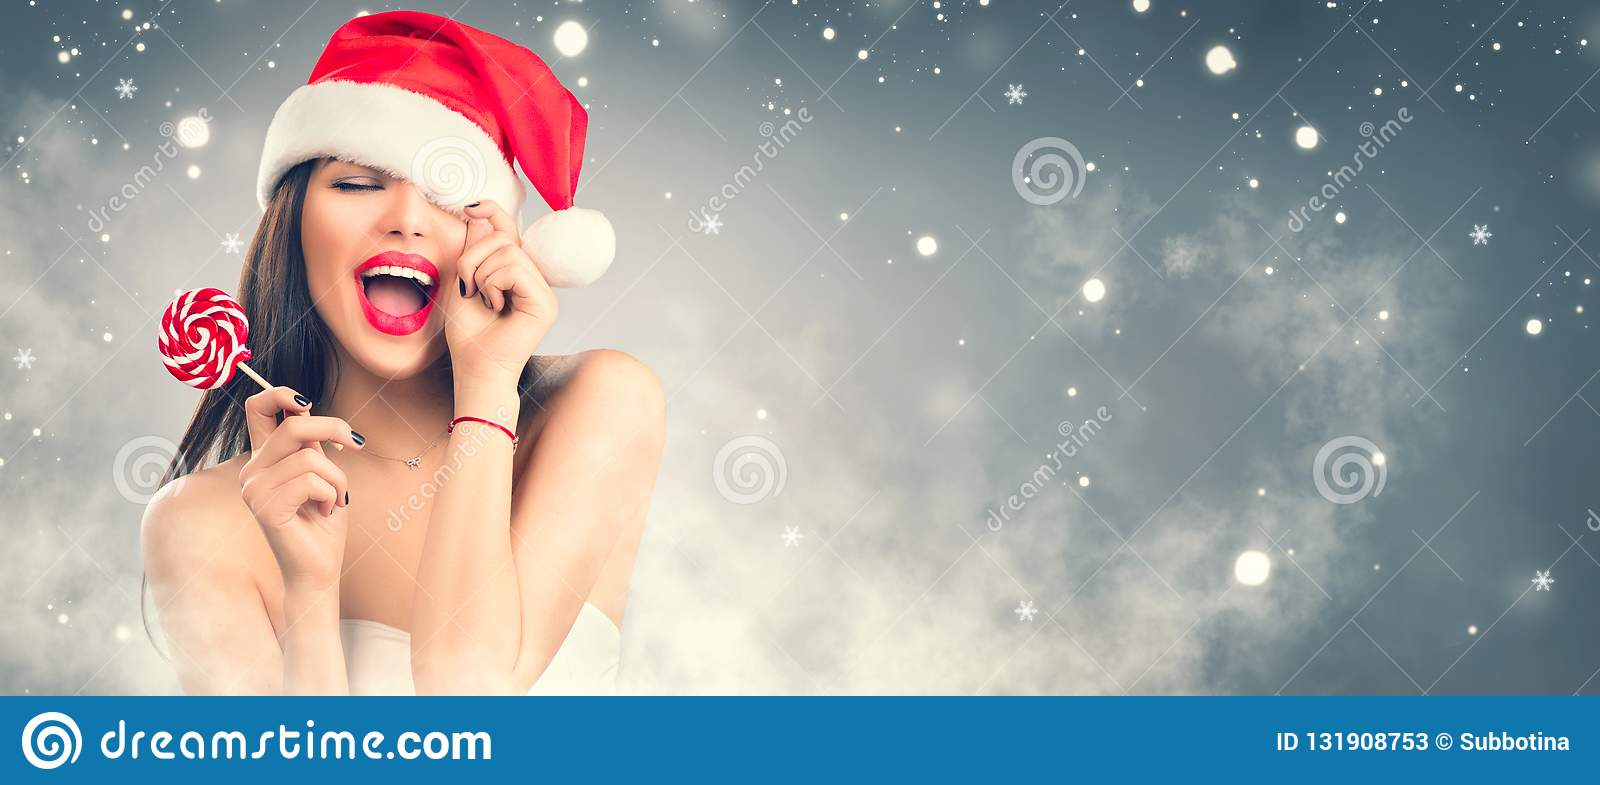 Christmas woman. Joyful model girl in Santa`s hat with red lips and lollipop candy in her hand